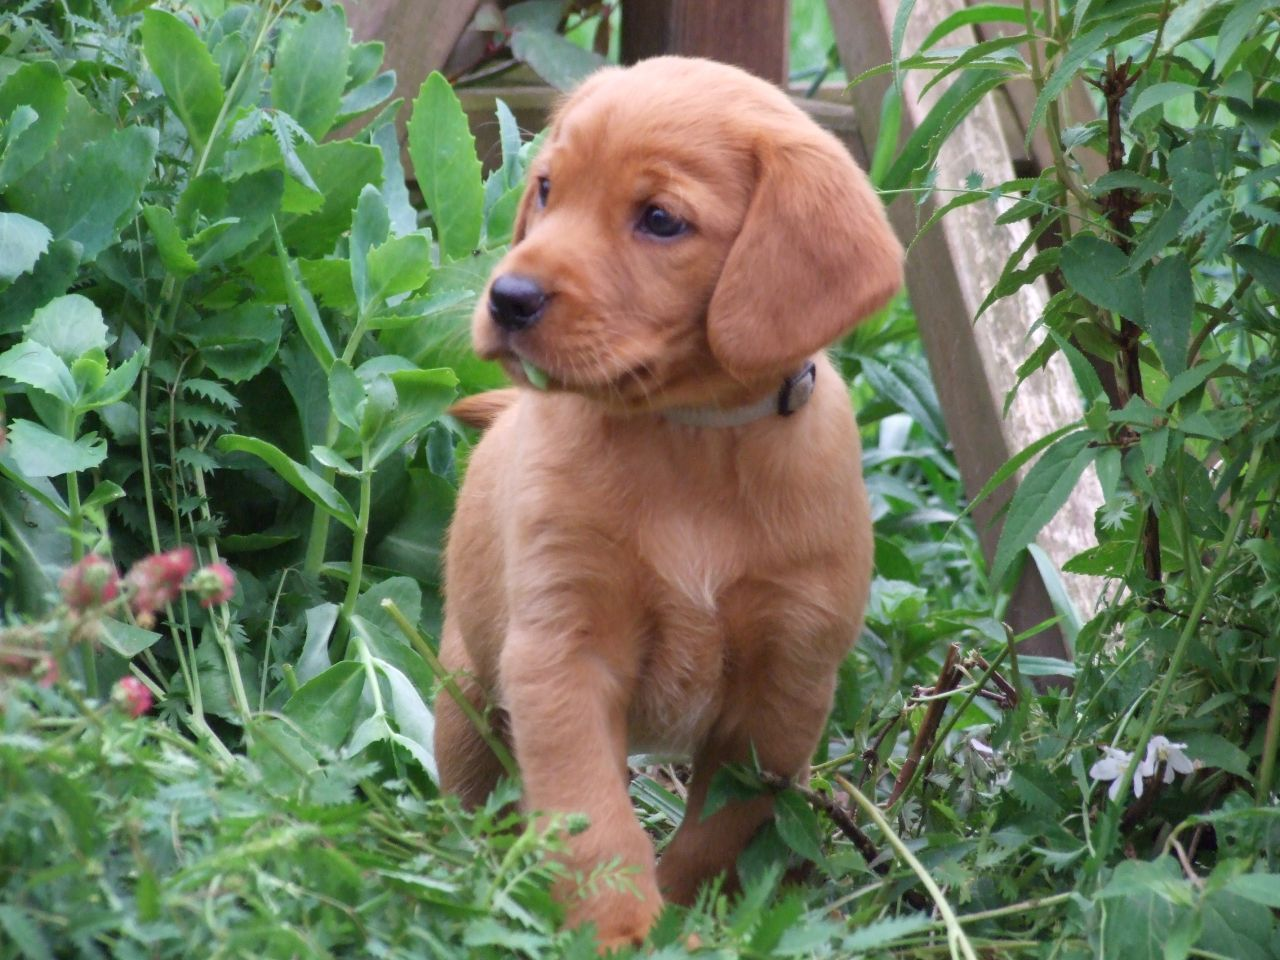 Beautiful Fox Red Puppies For Sale Healthy And Well Socialised In A Busy Home With Dogs And People Located Labrador Puppy Vizsla Puppies Cute Little Animals